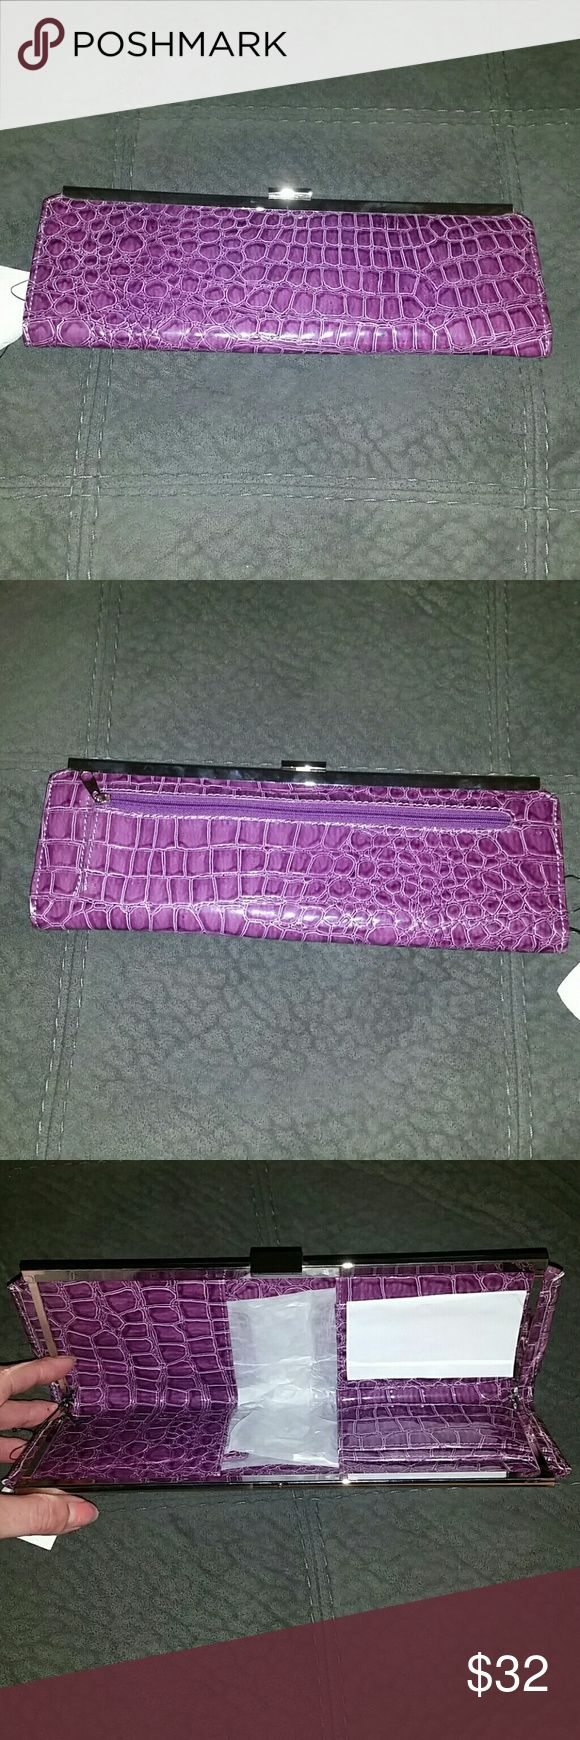 NWT!! Gorgeous purple clutch!! This is NEW with original tags!! This is a very long one measuring 12x4!! Bags Clutches & Wristlets